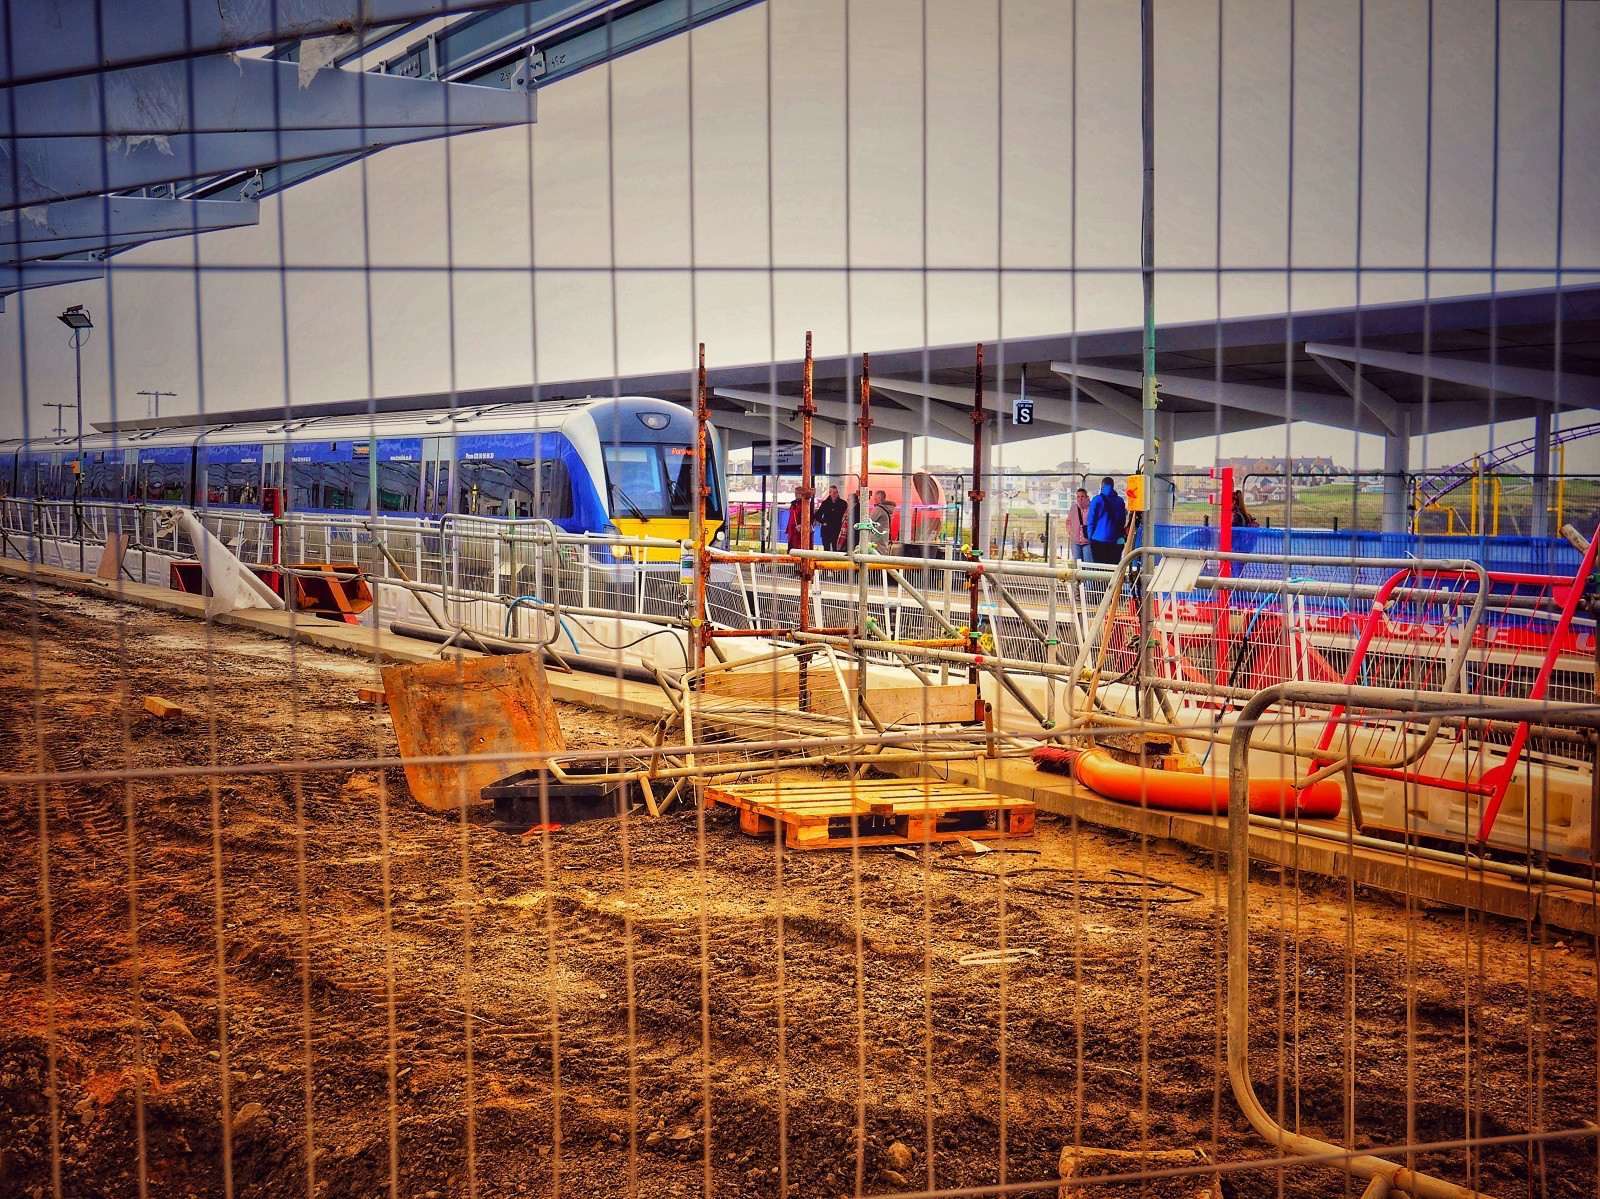 PDI - Portrush and Translink by Marie Brennan (5 marks)